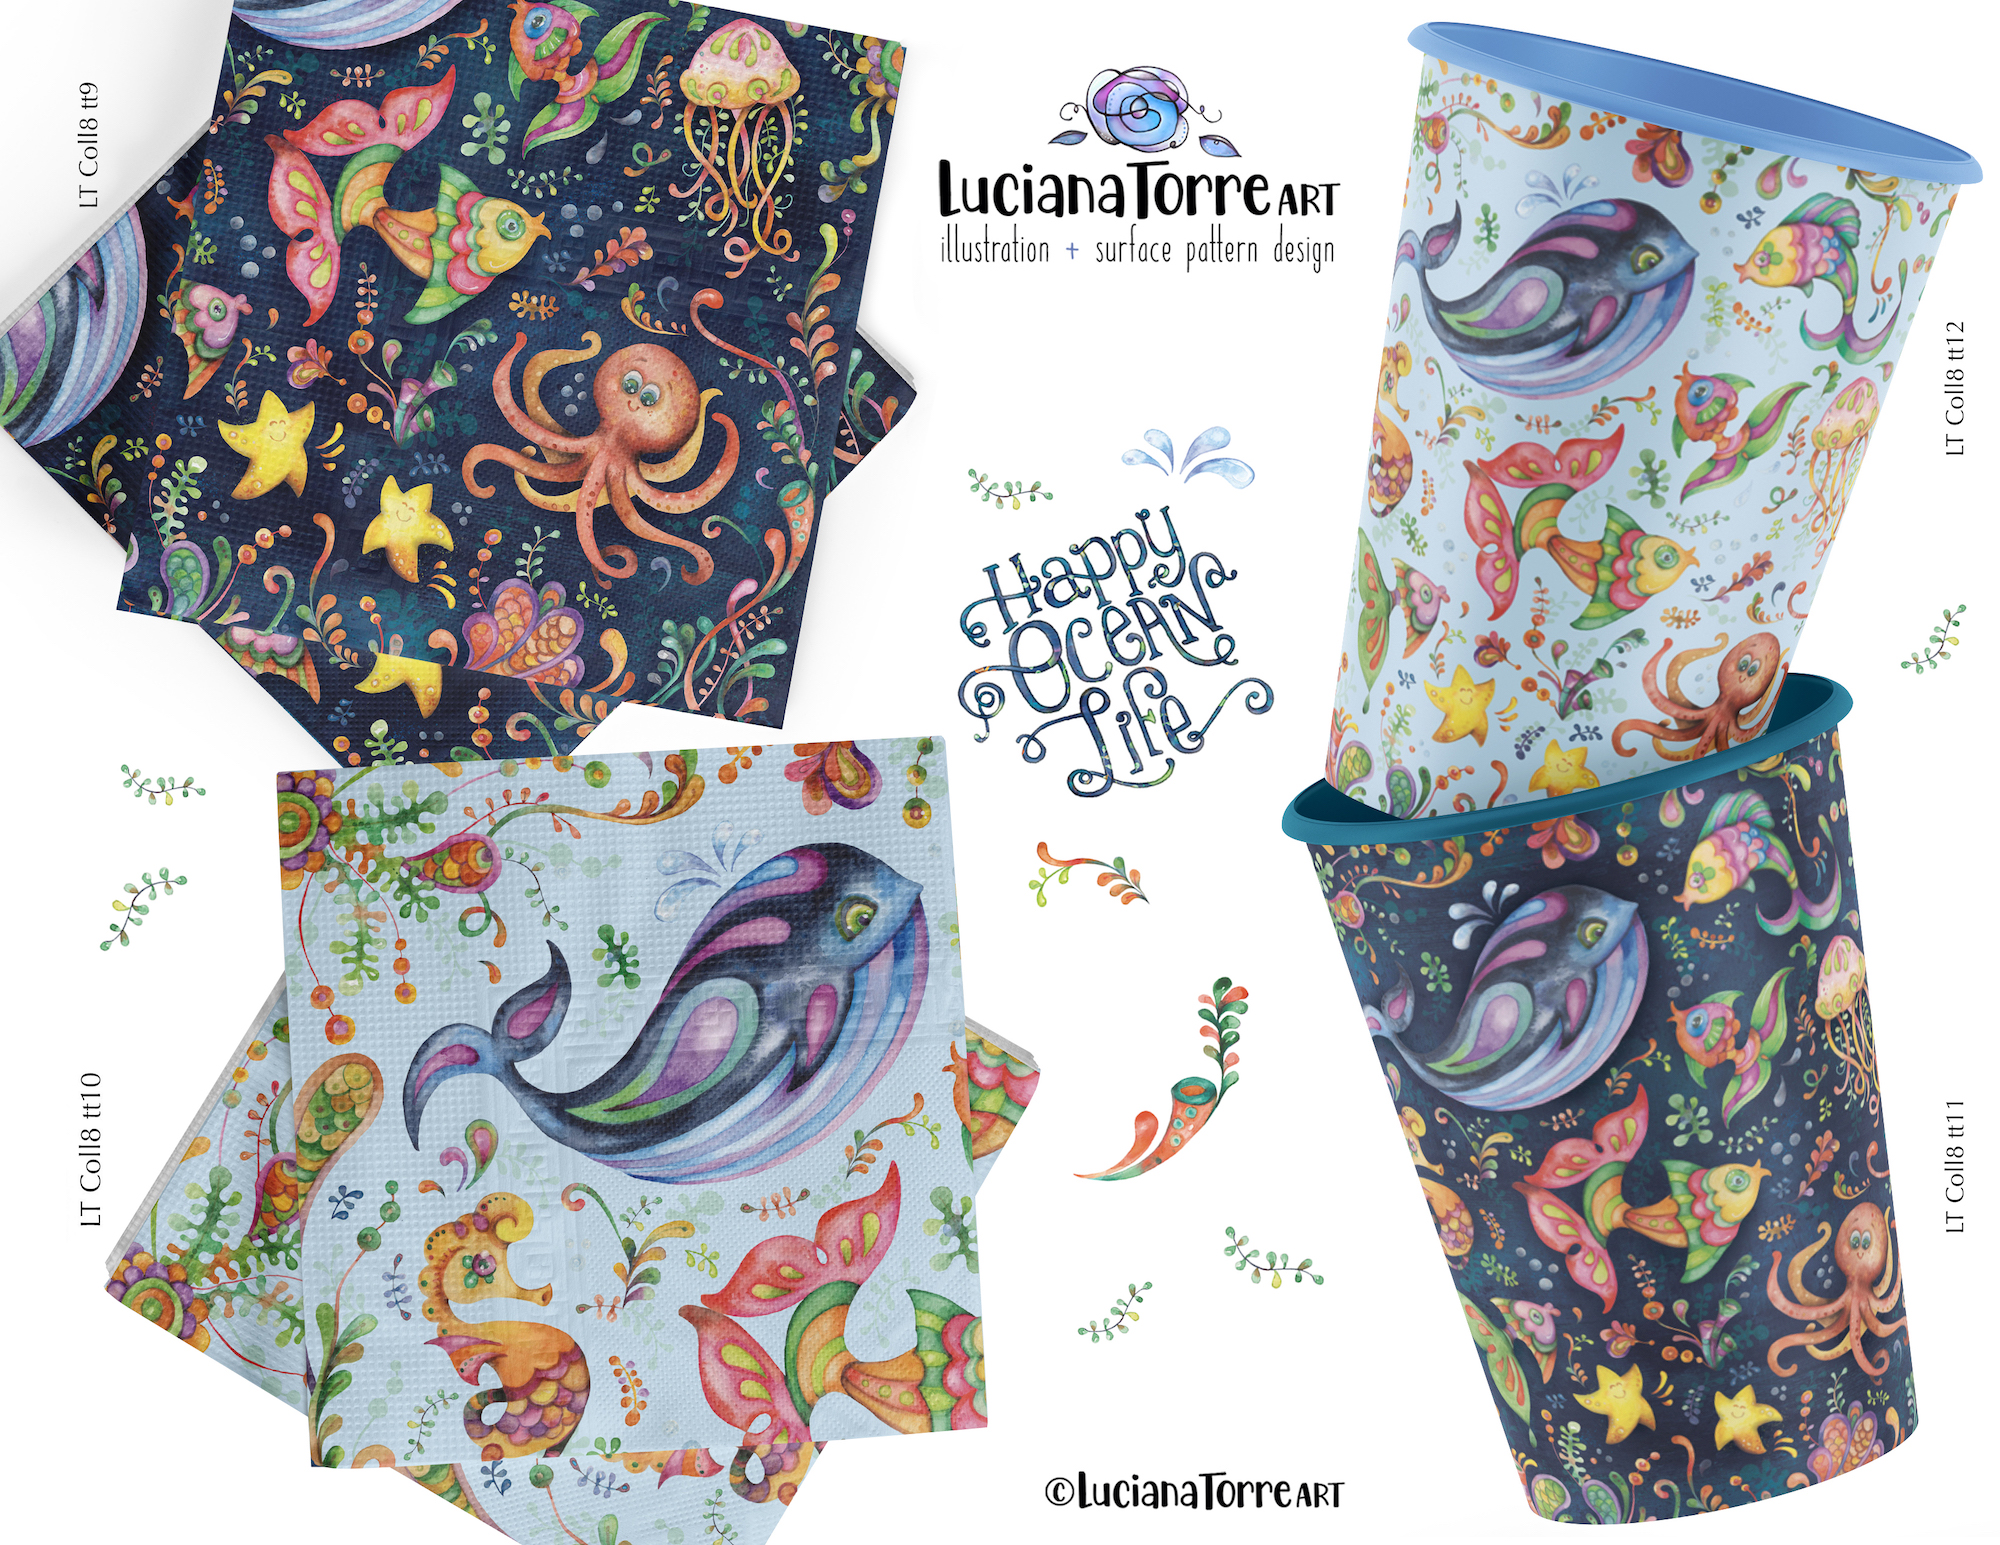 Luciana Torre Art tabletop pattern for license